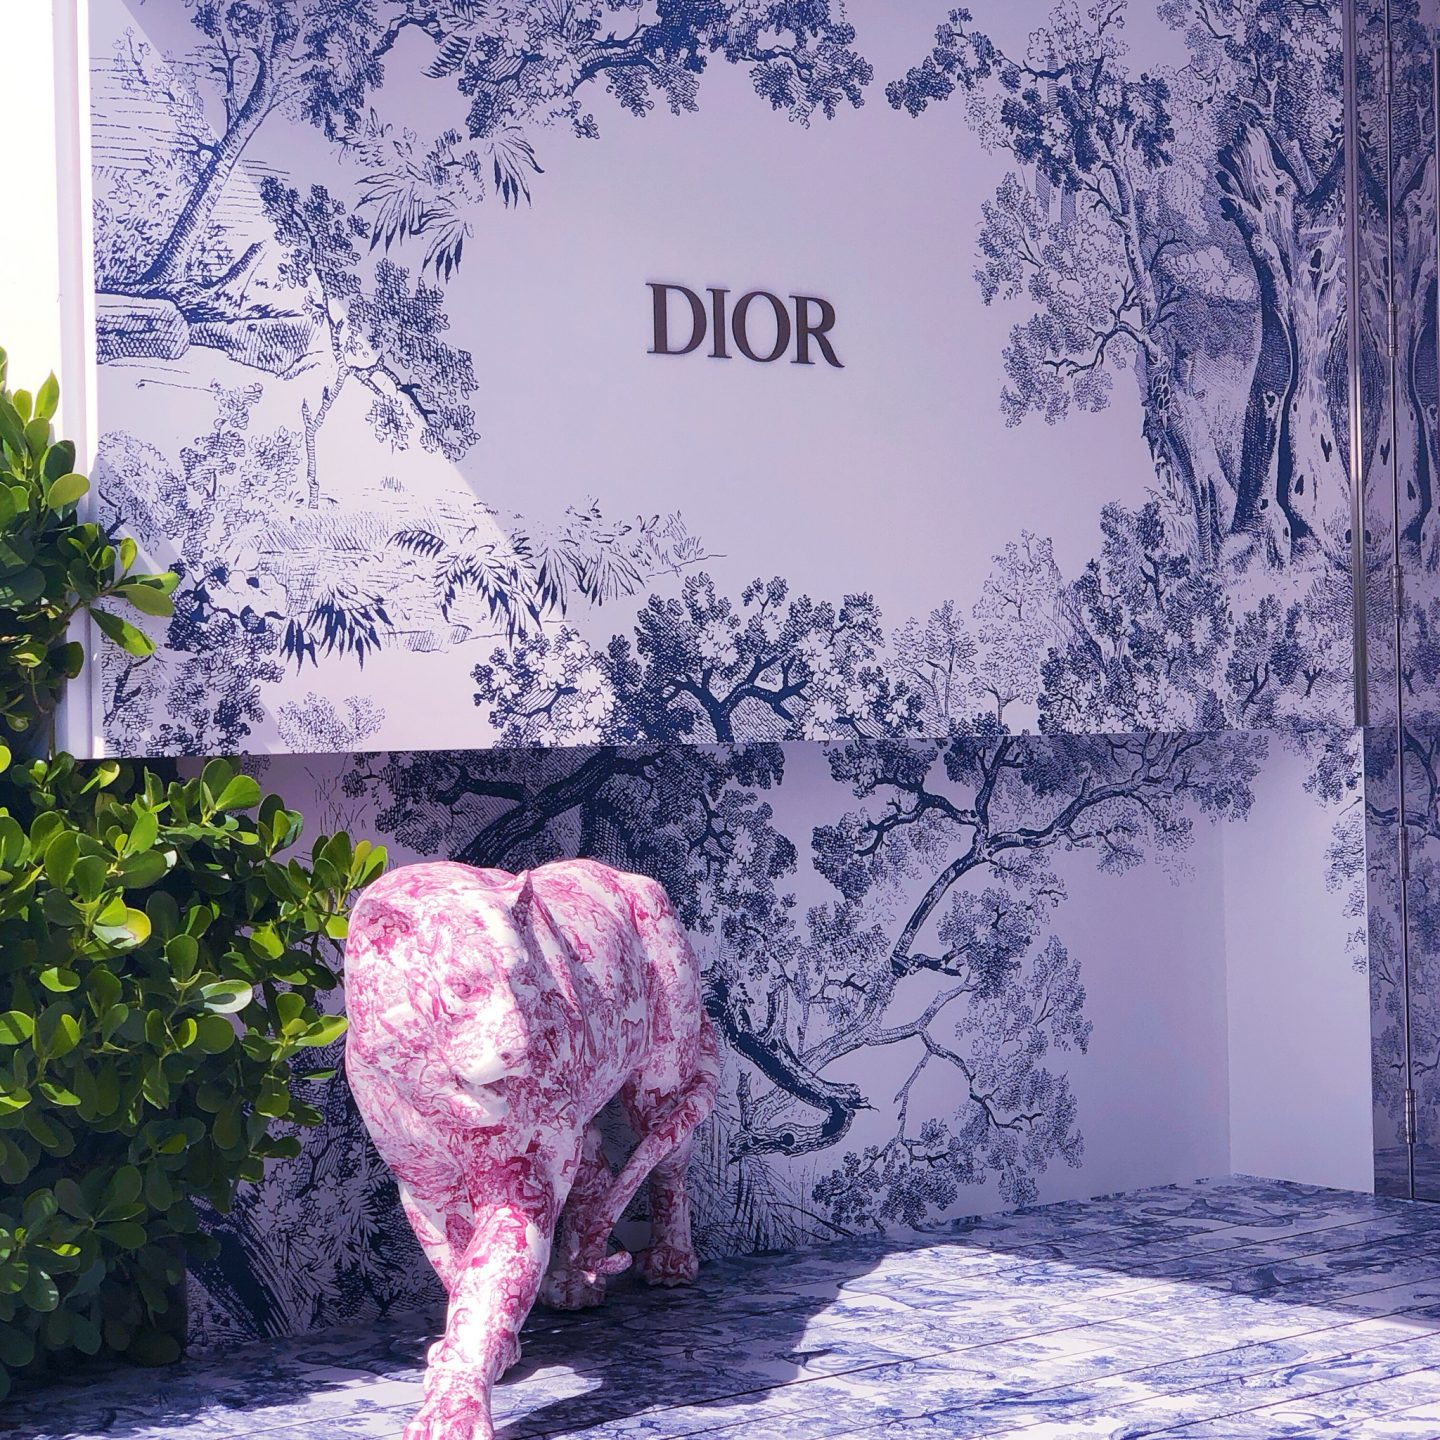 Dior Cafe Miami, cafe dior, cafe dior miami, what cafe dior miami looks like